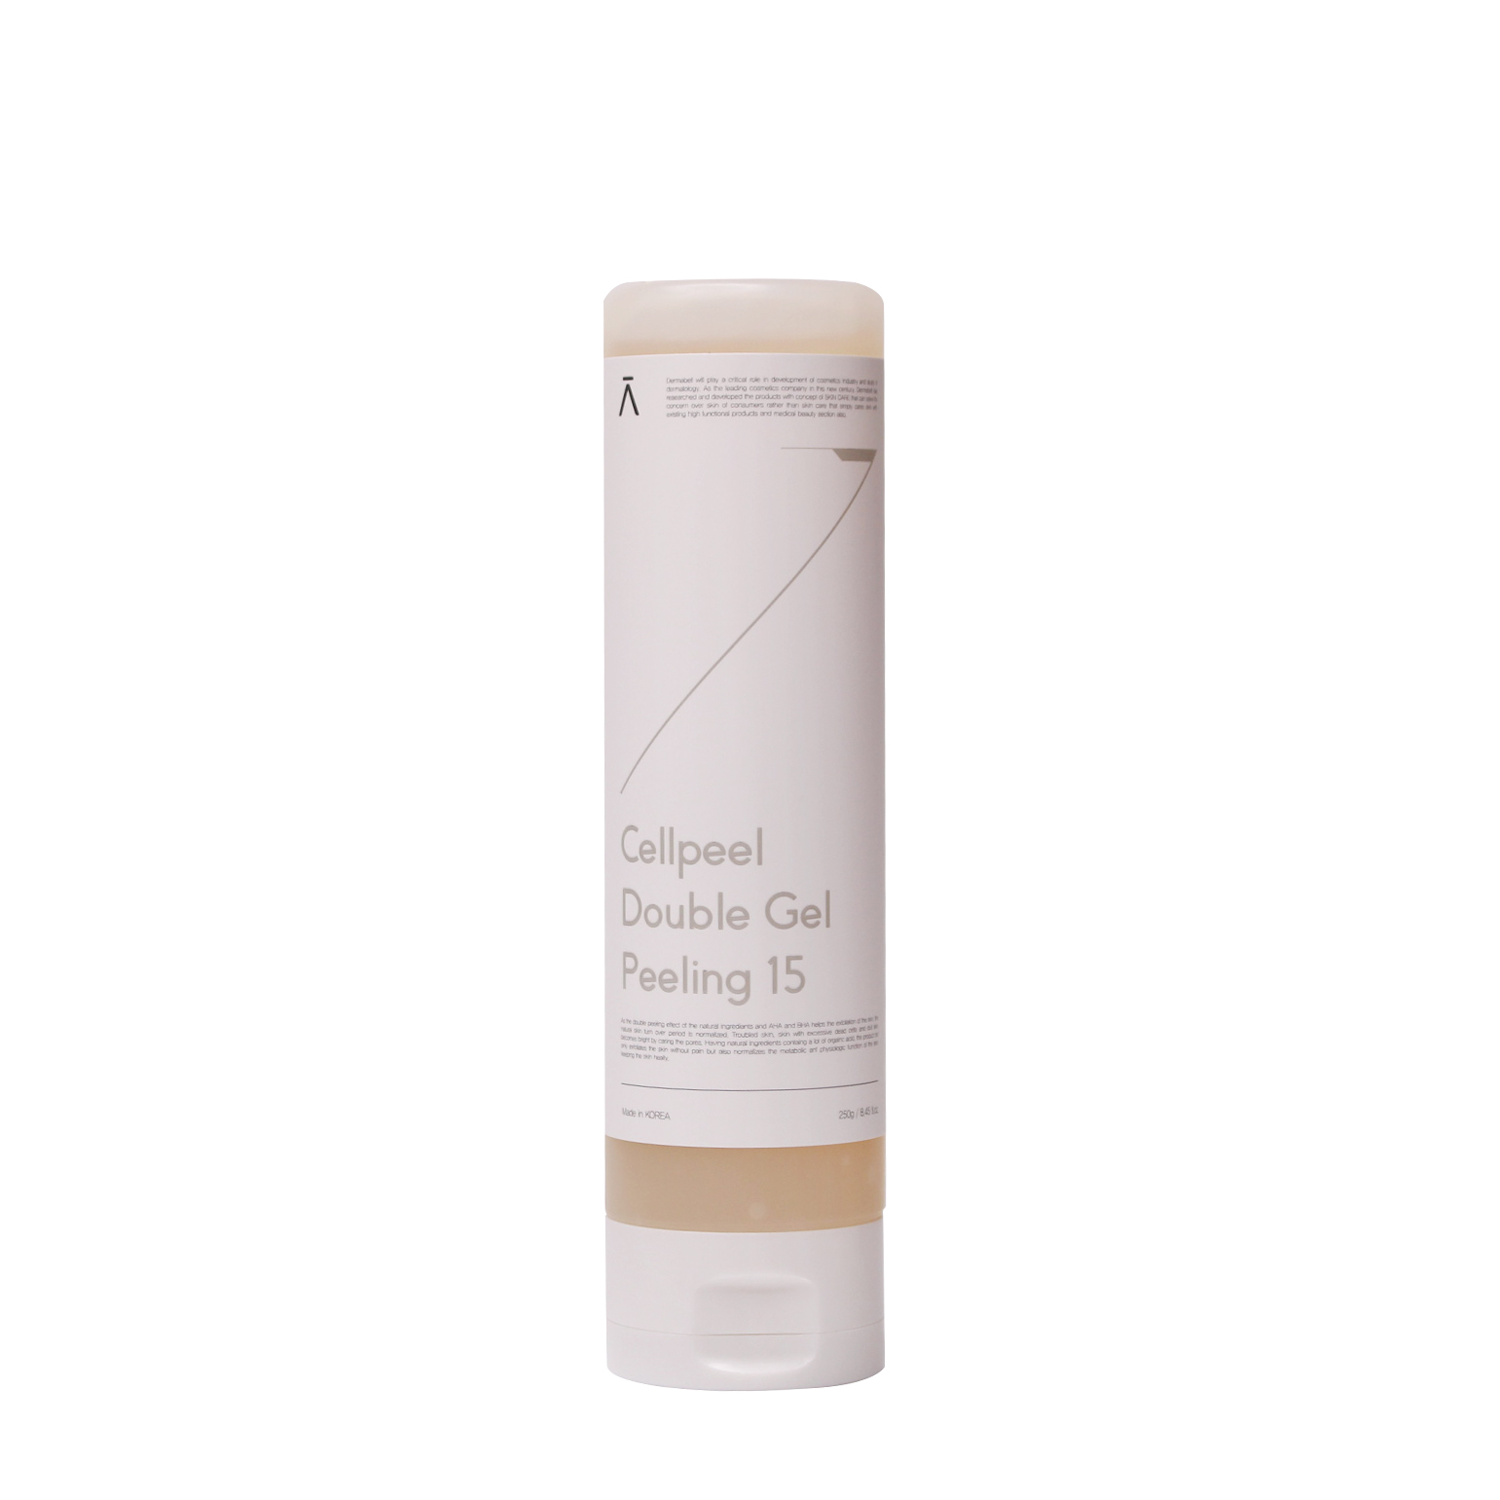 Cellpeel Double Gel Peeling 15 Peeling by DERMABELL PRO